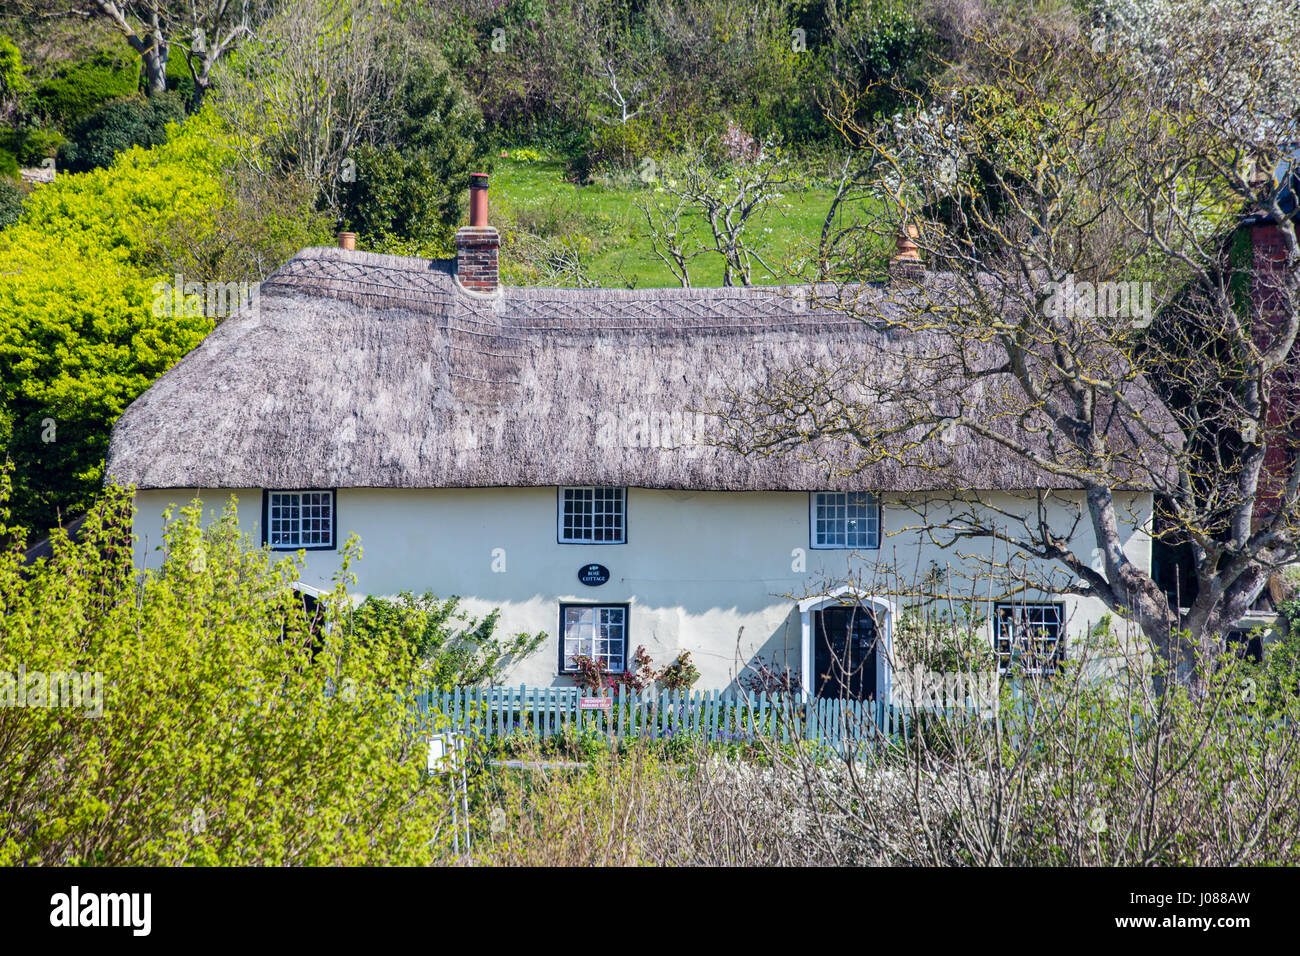 Quaint thatched cottage in West Lulworth village, Dorset, England, UK - Stock Image